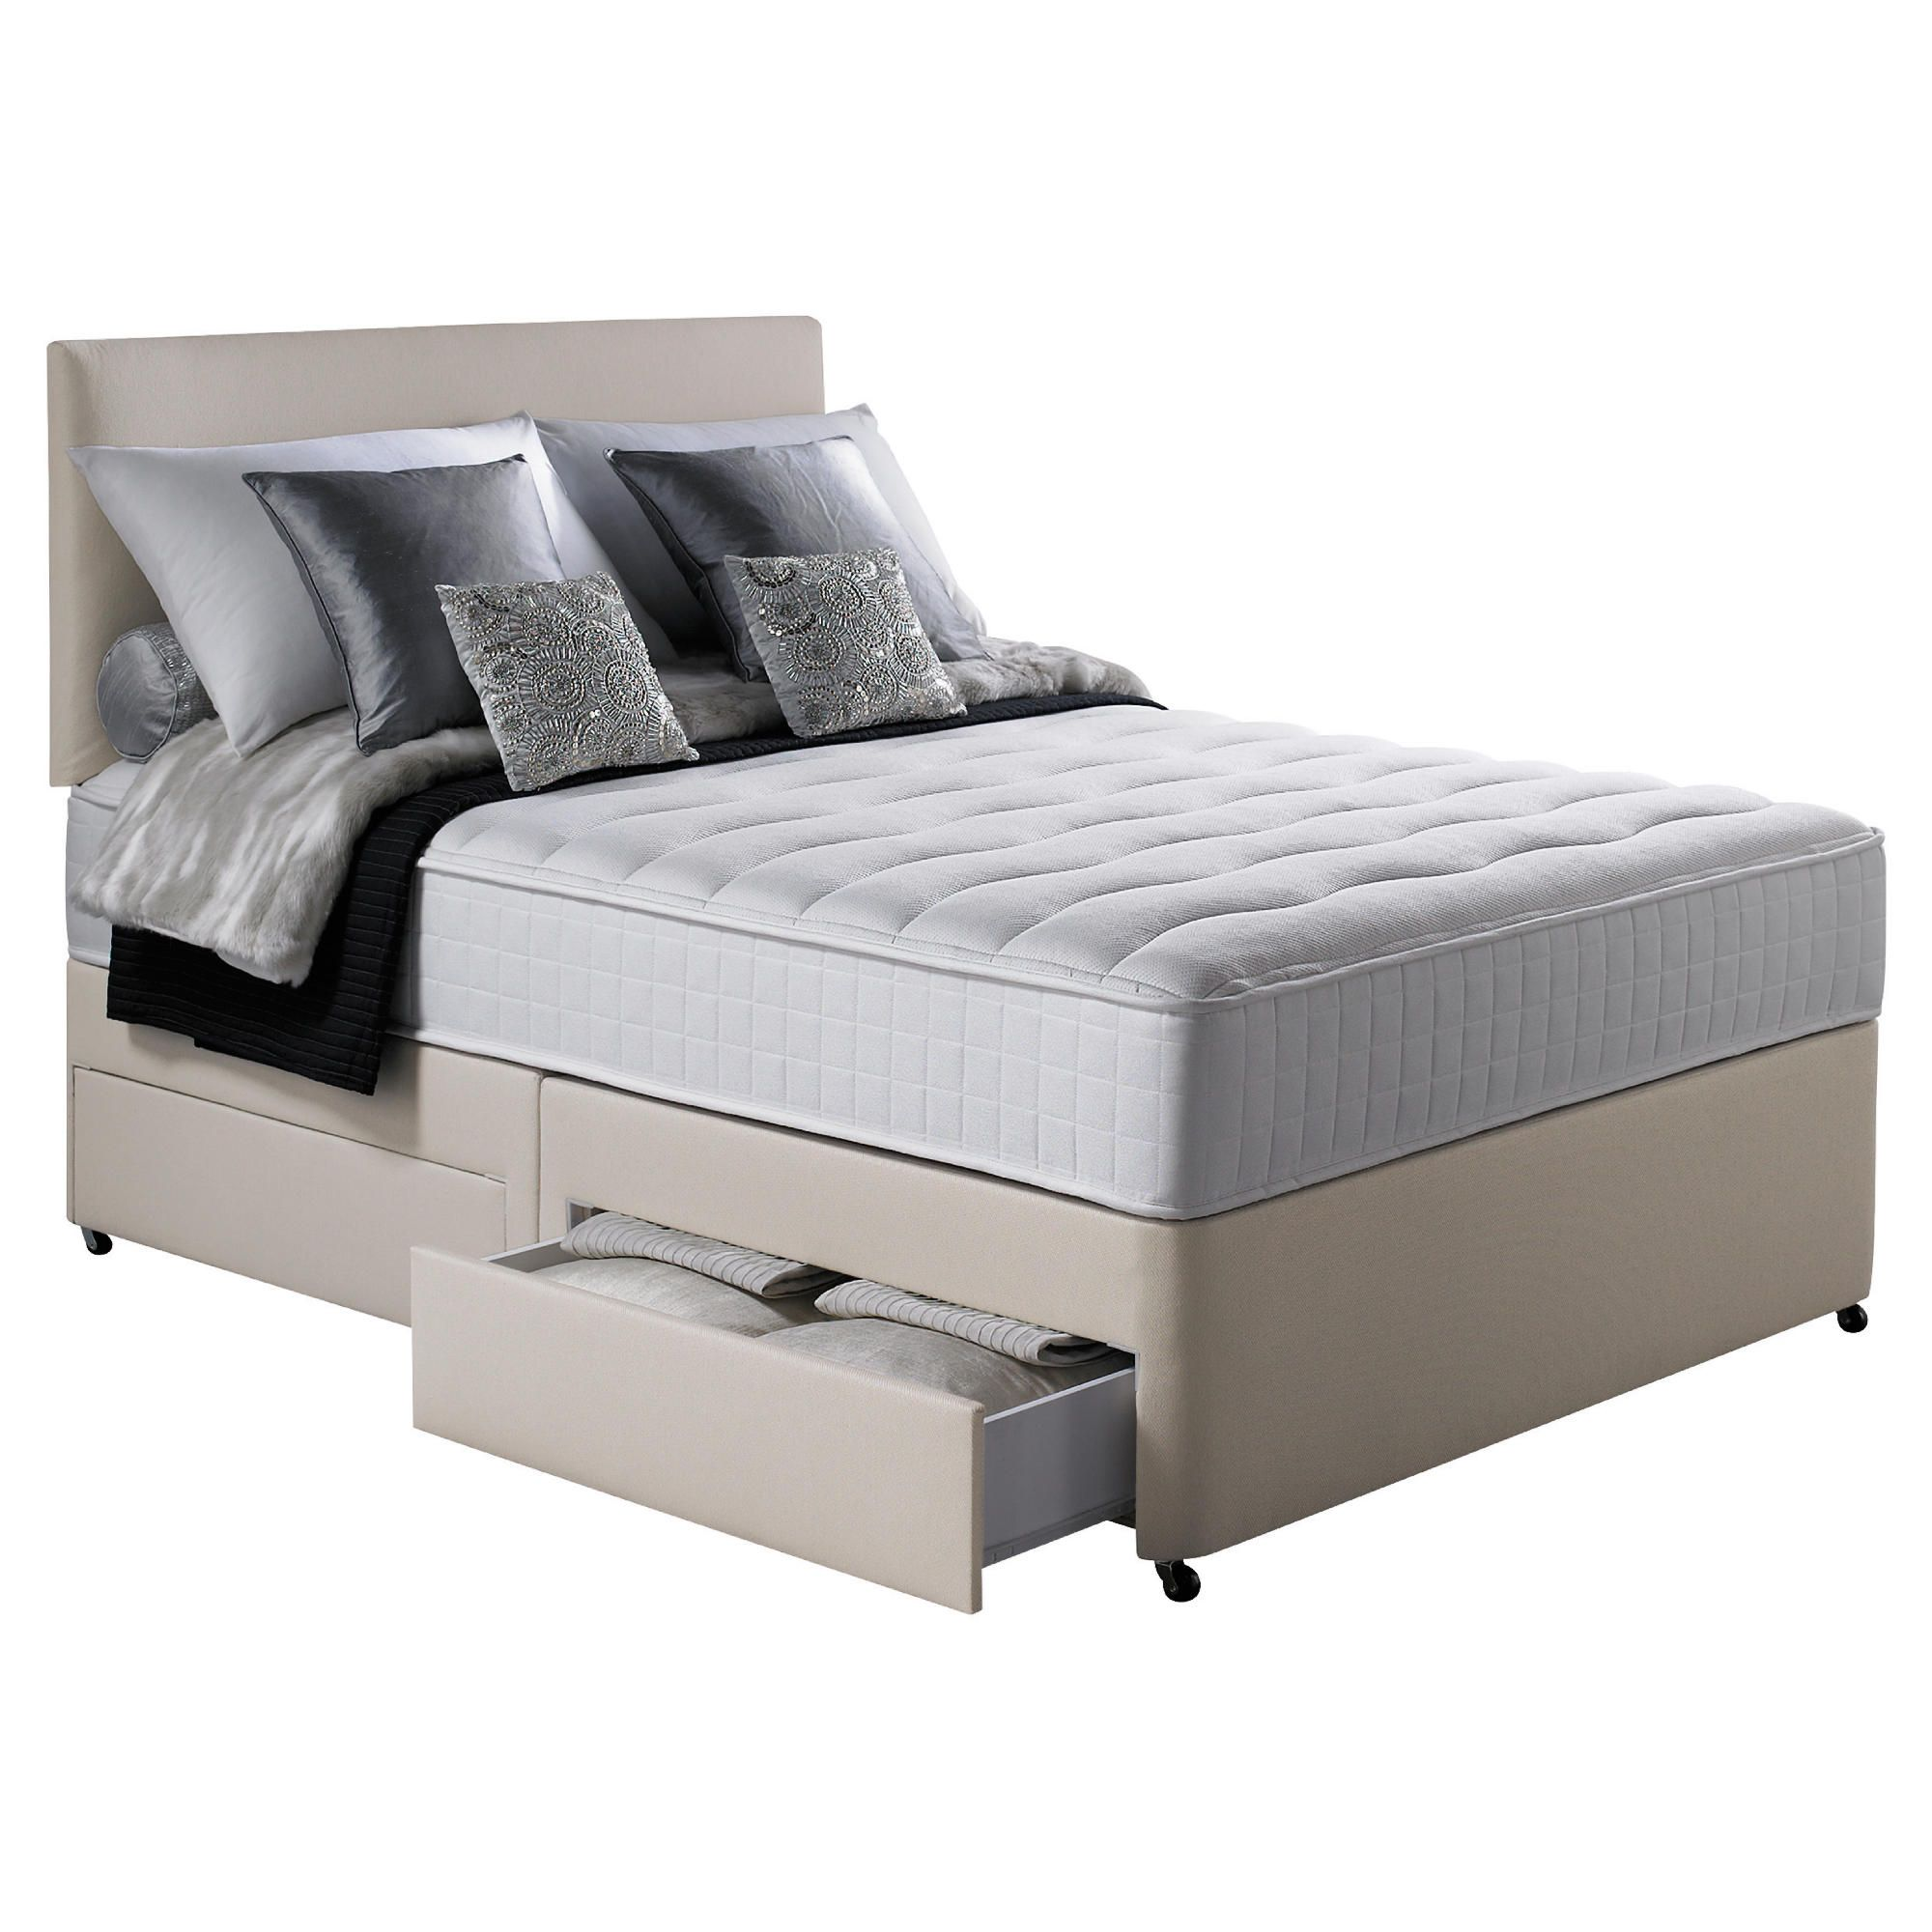 Home And Garden Bedroom Silentnight Impress Memory Foam